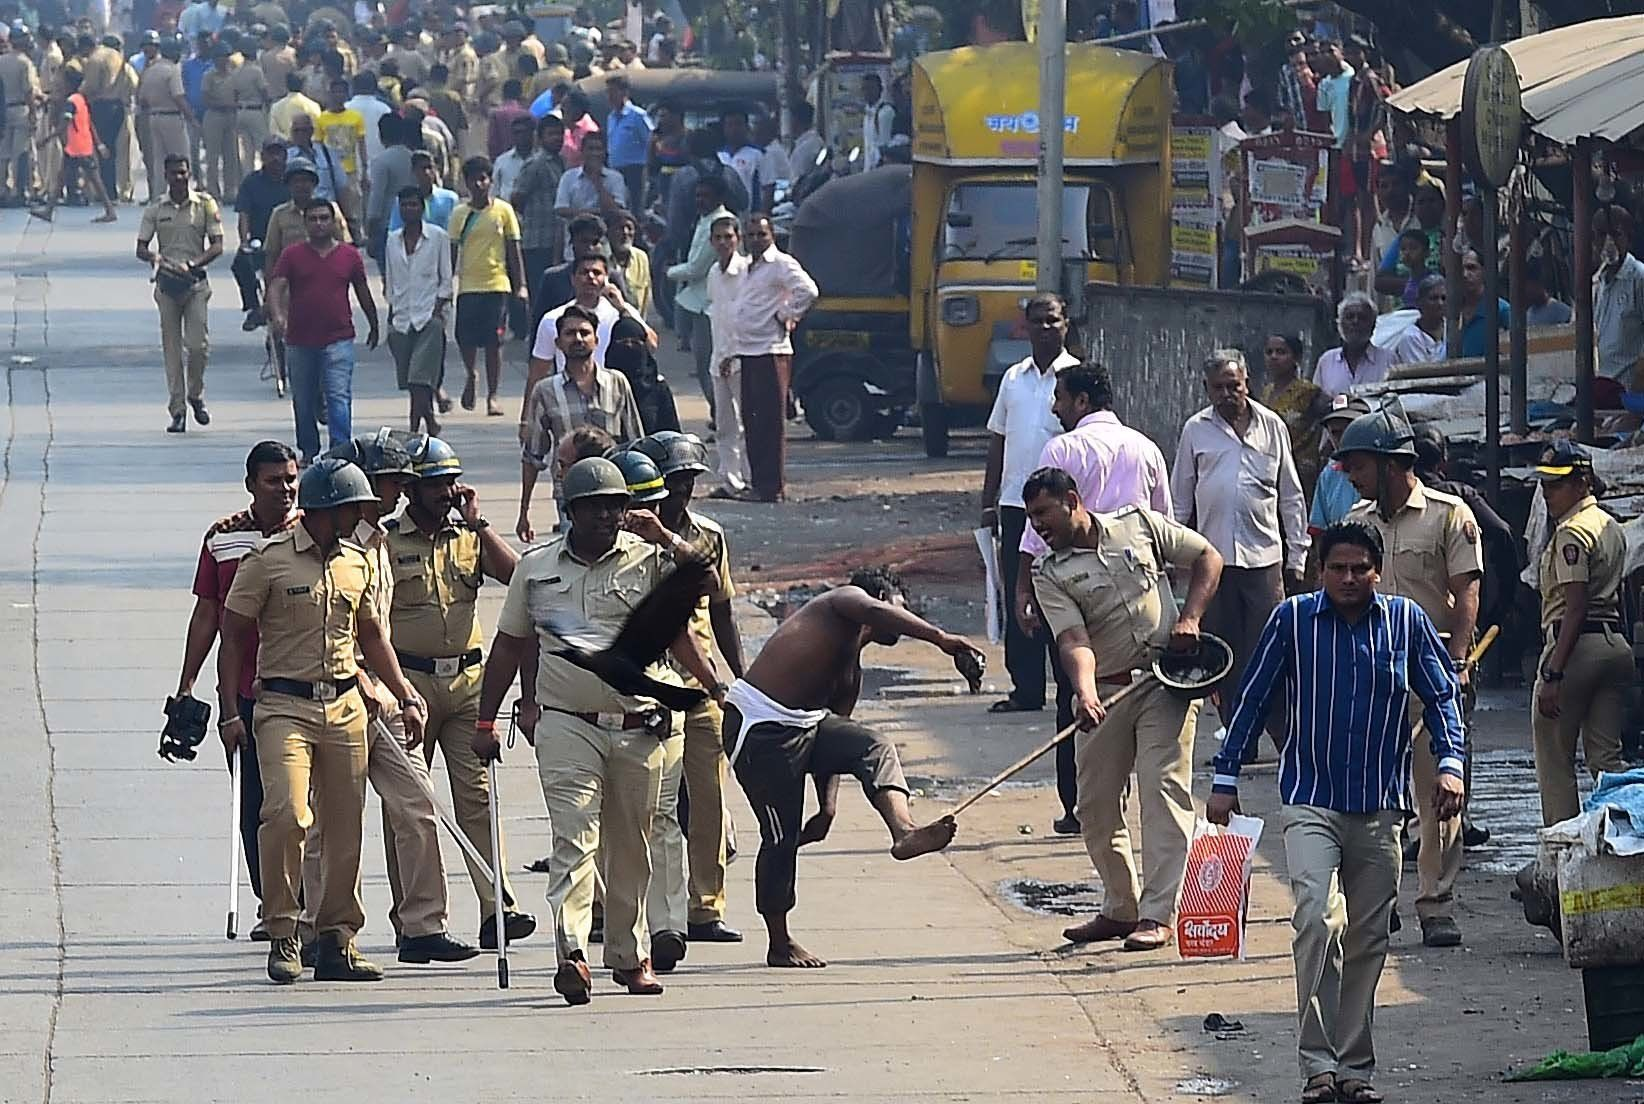 Bhima-Koregaon: Cops Fighting 'Campaign Of Hate' On Social Media Ahead Of